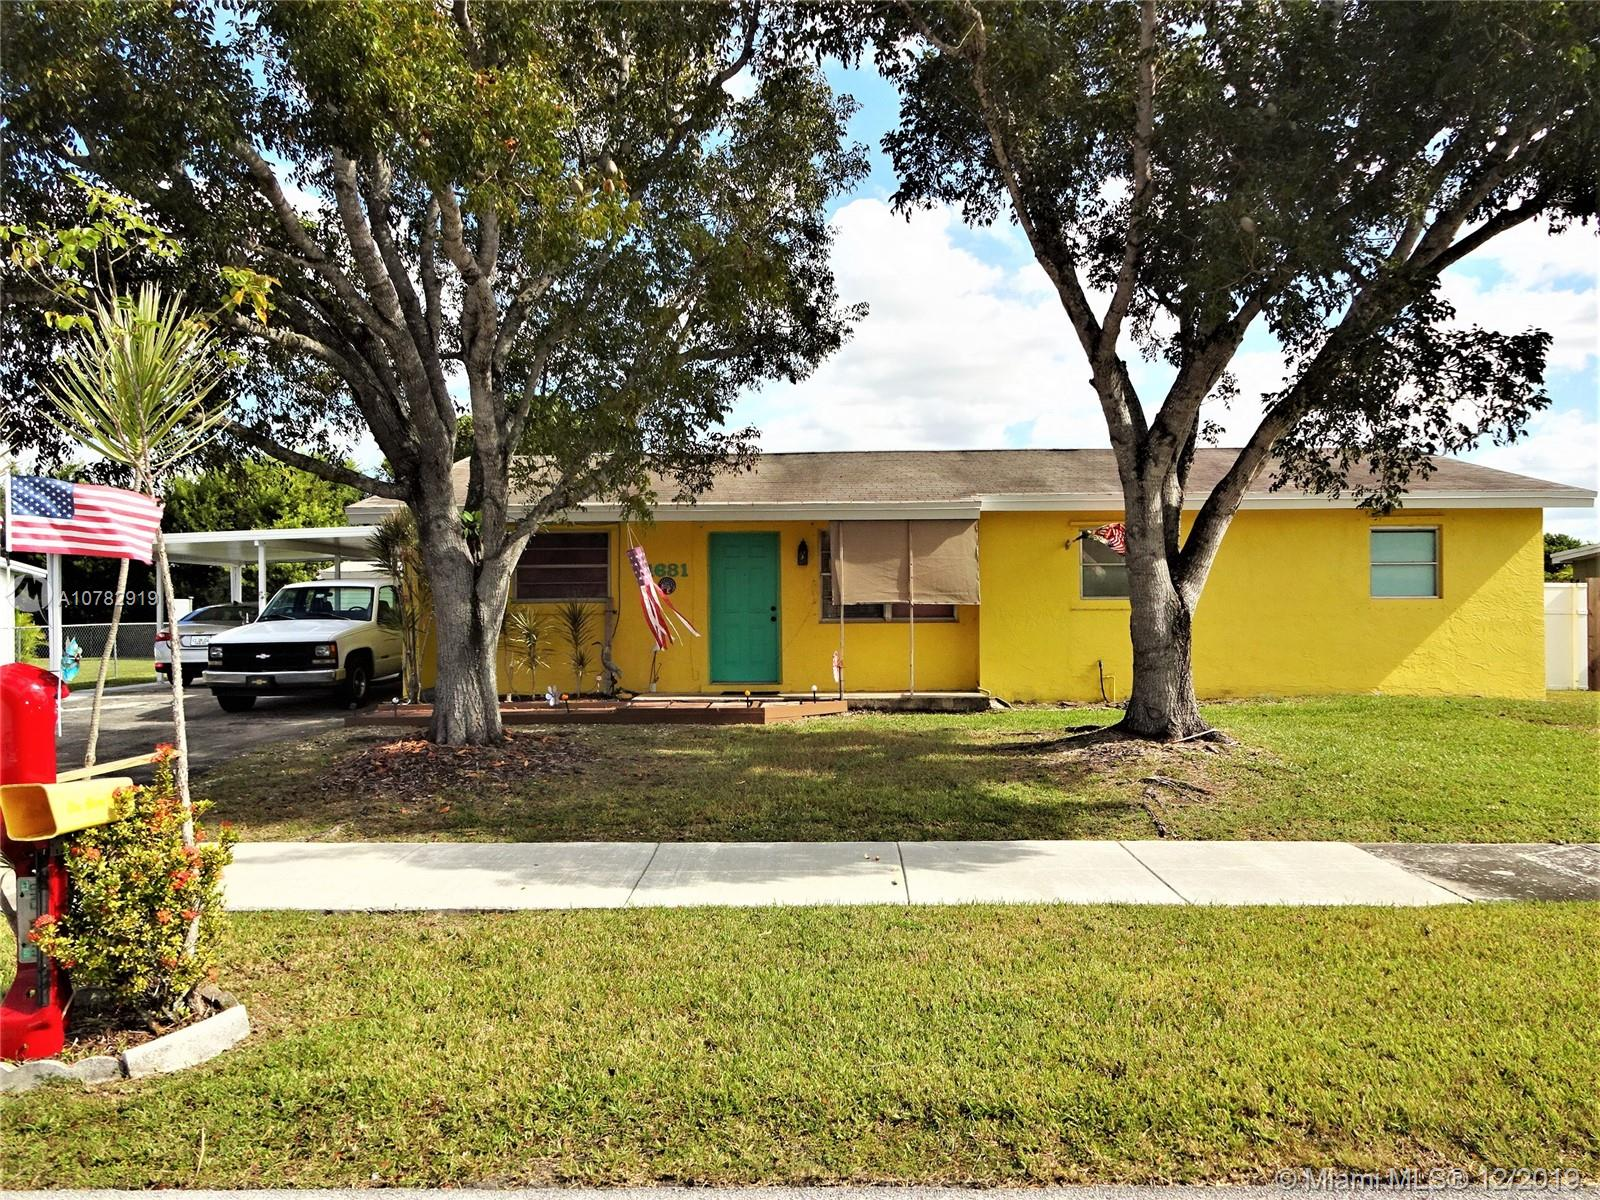 1681 NW 13 Ave, Homestead, FL 33030 - Homestead, FL real estate listing